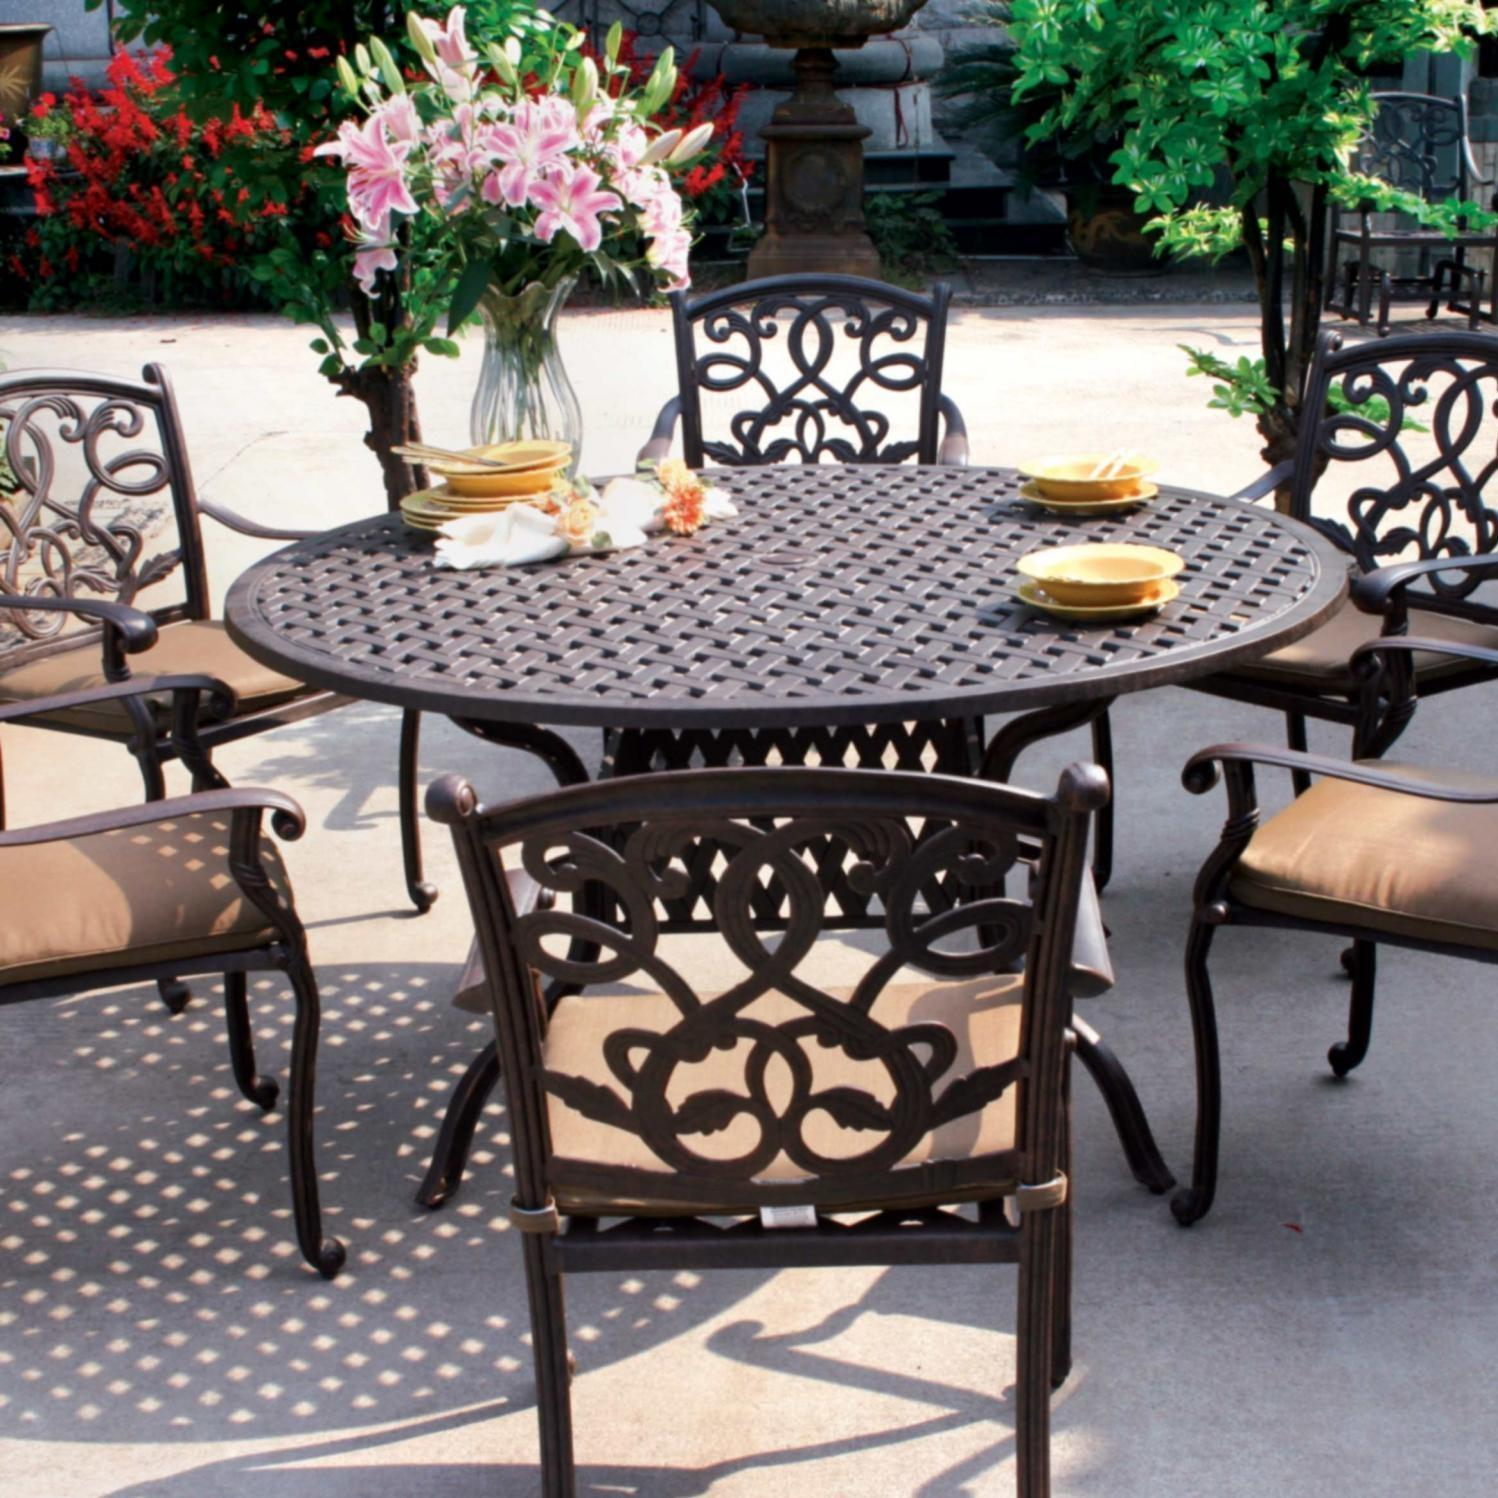 Darlee Santa Monica 6-Person Patio Dining Set - Antique Bronze